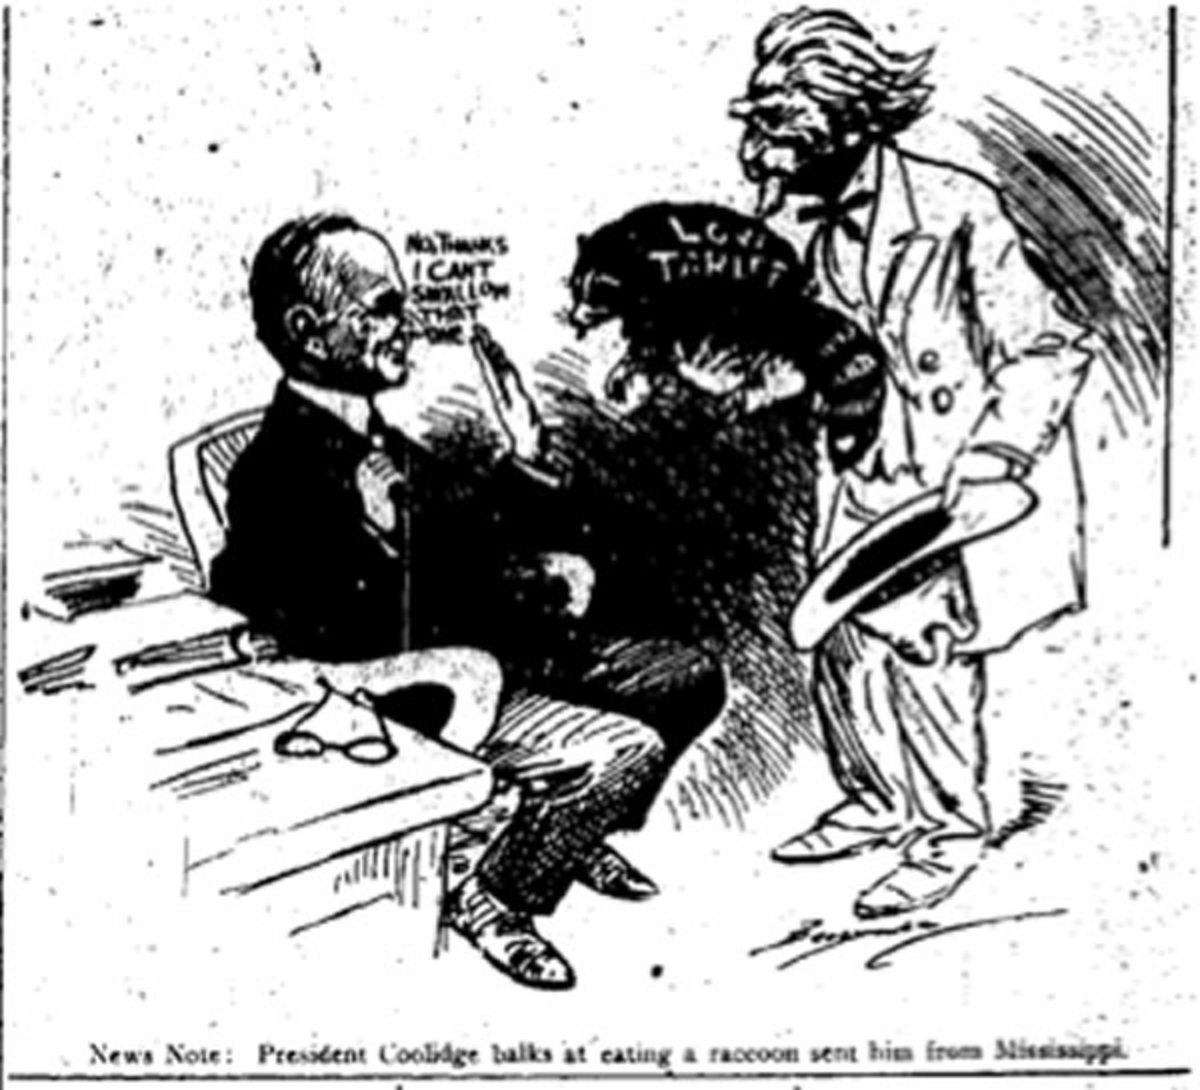 Political Cartoon of Coolidge and the Raccoon